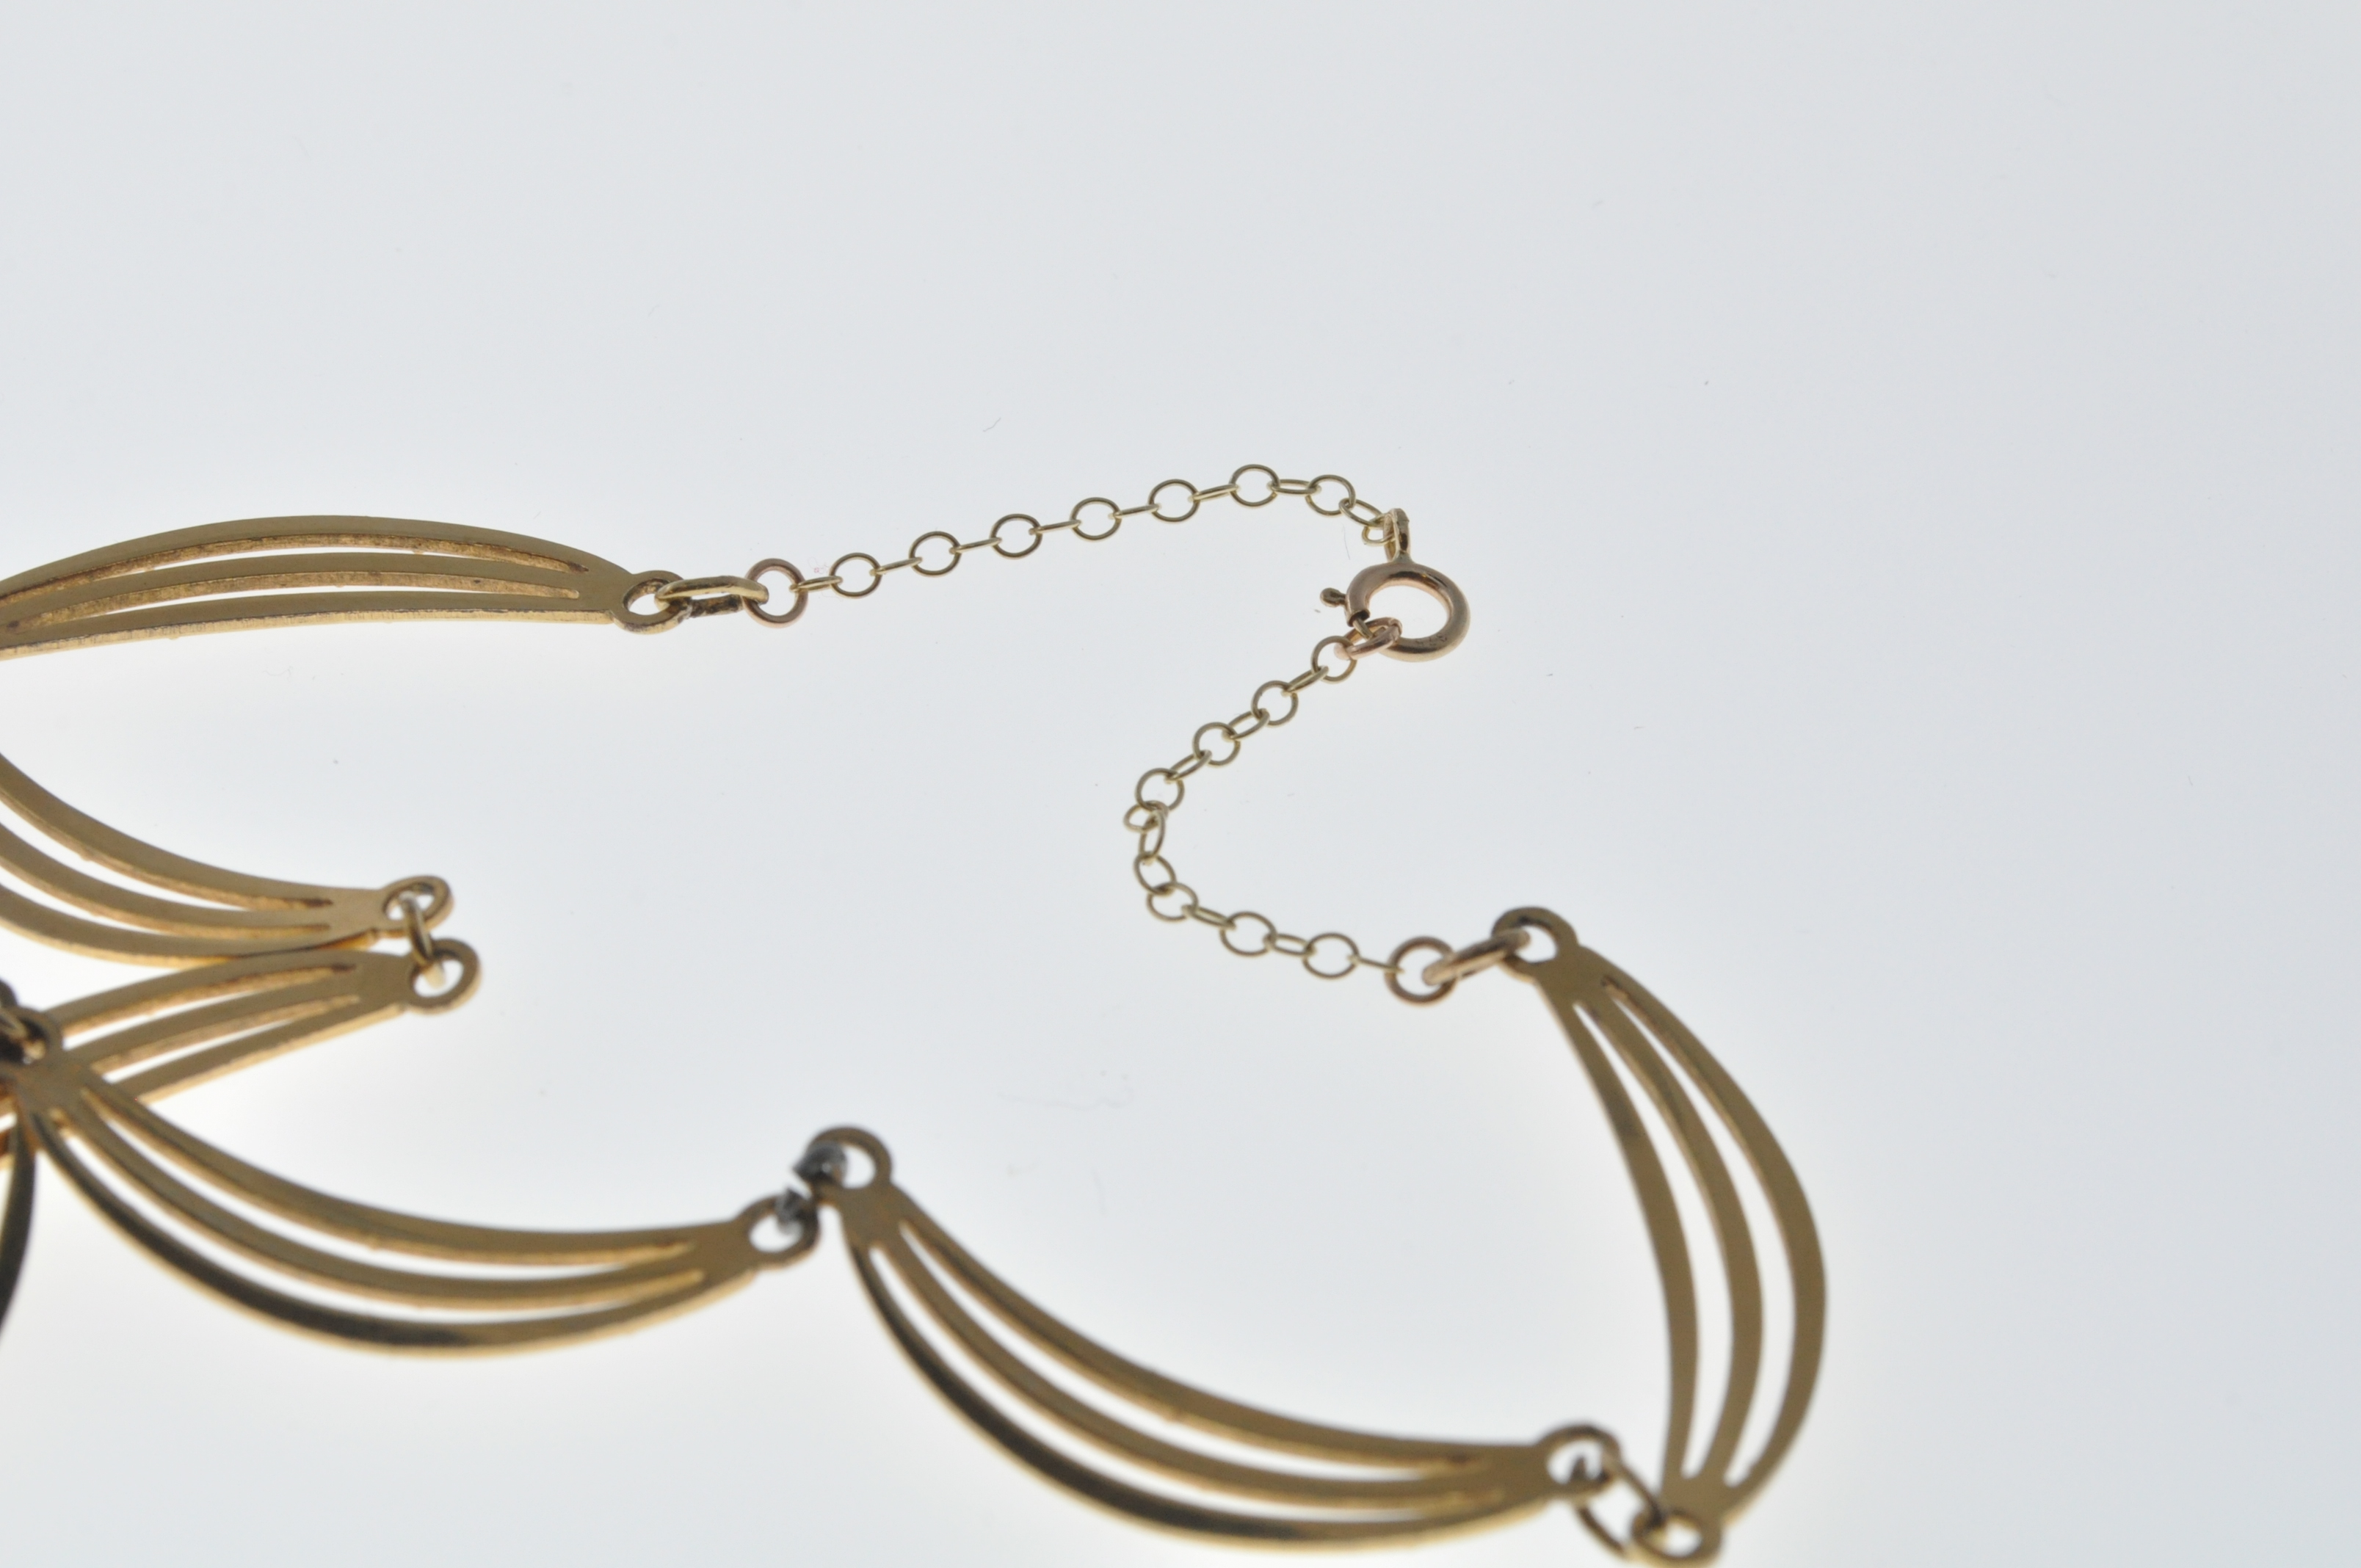 VINTAGE BANGLE AND NECKLACE - Image 8 of 9